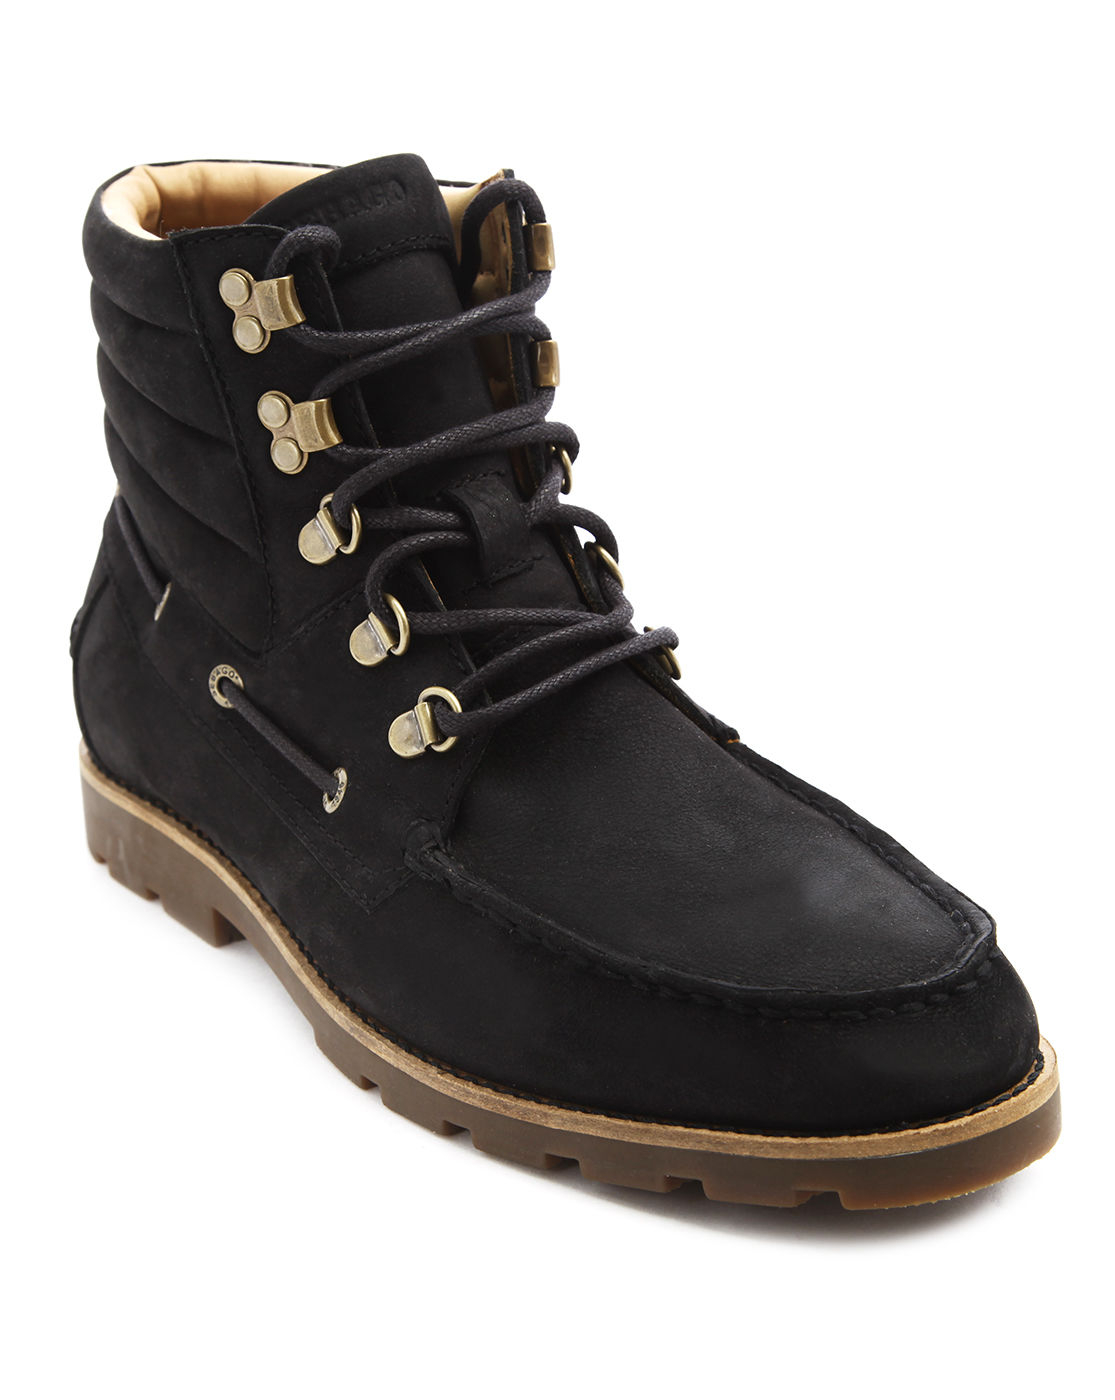 sebago hyde hiker mid black suede waterproof boots in